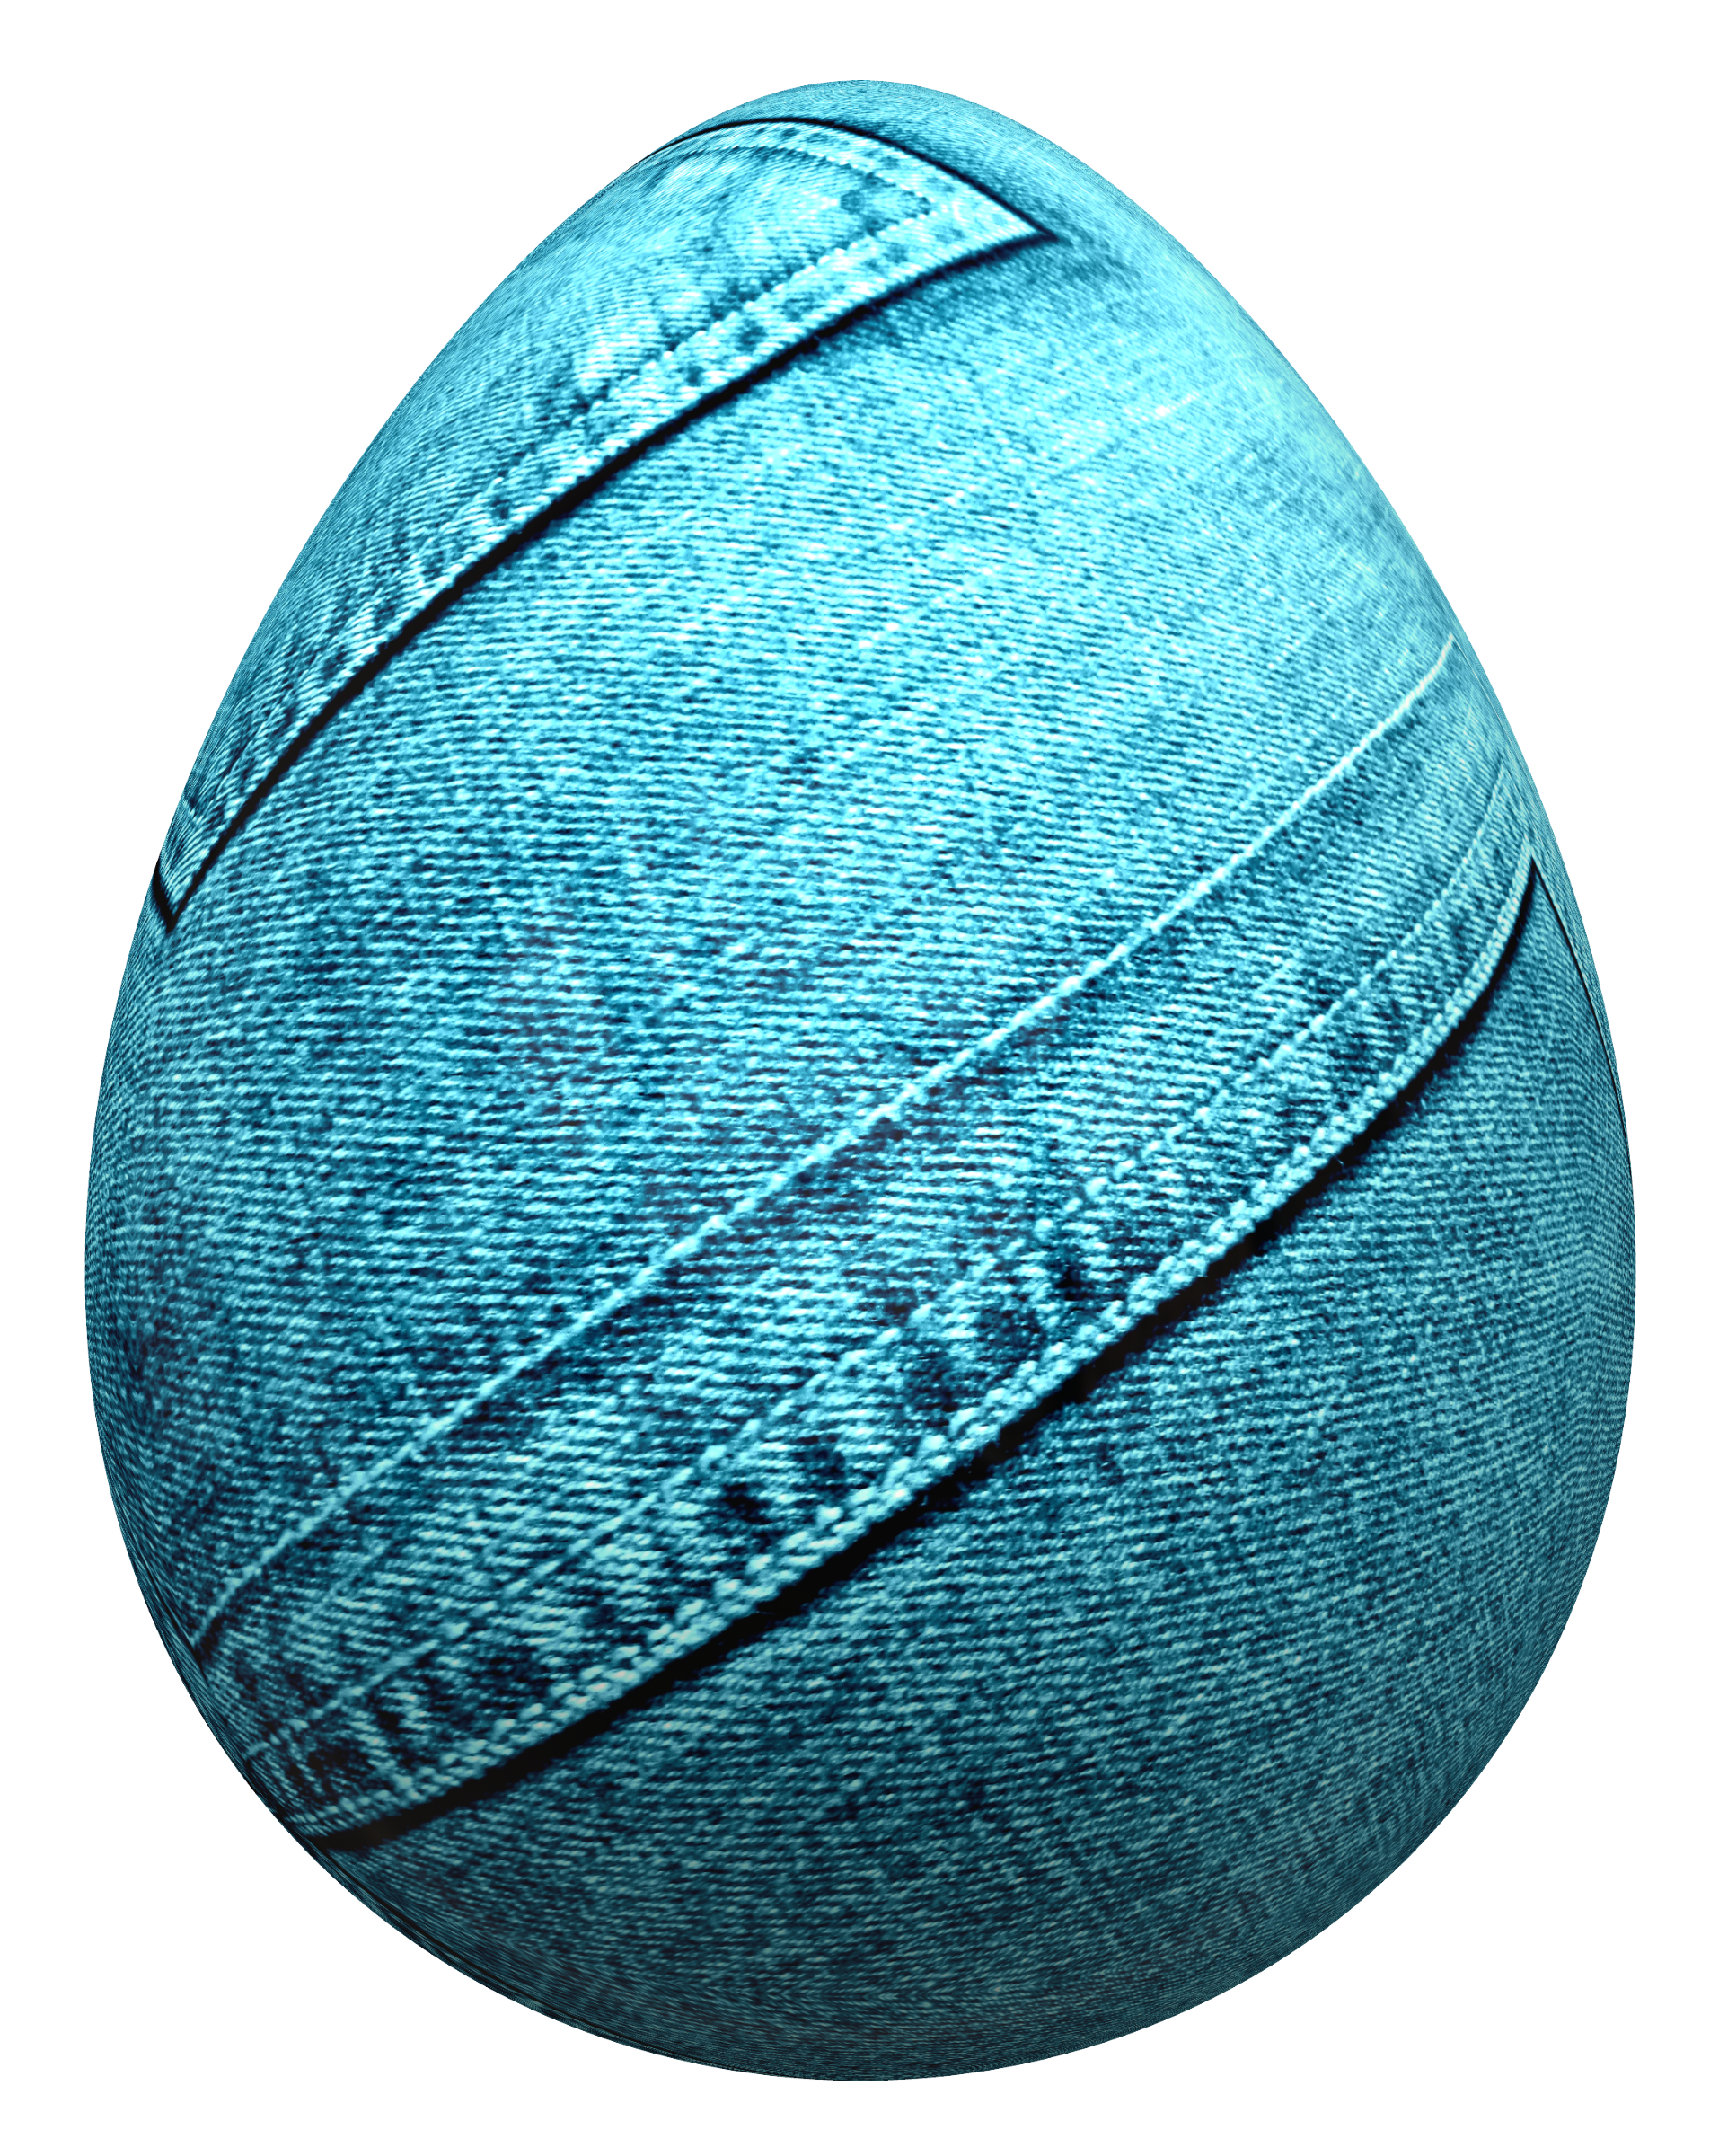 Egg Wrapped in Blue Jeans PNG Image